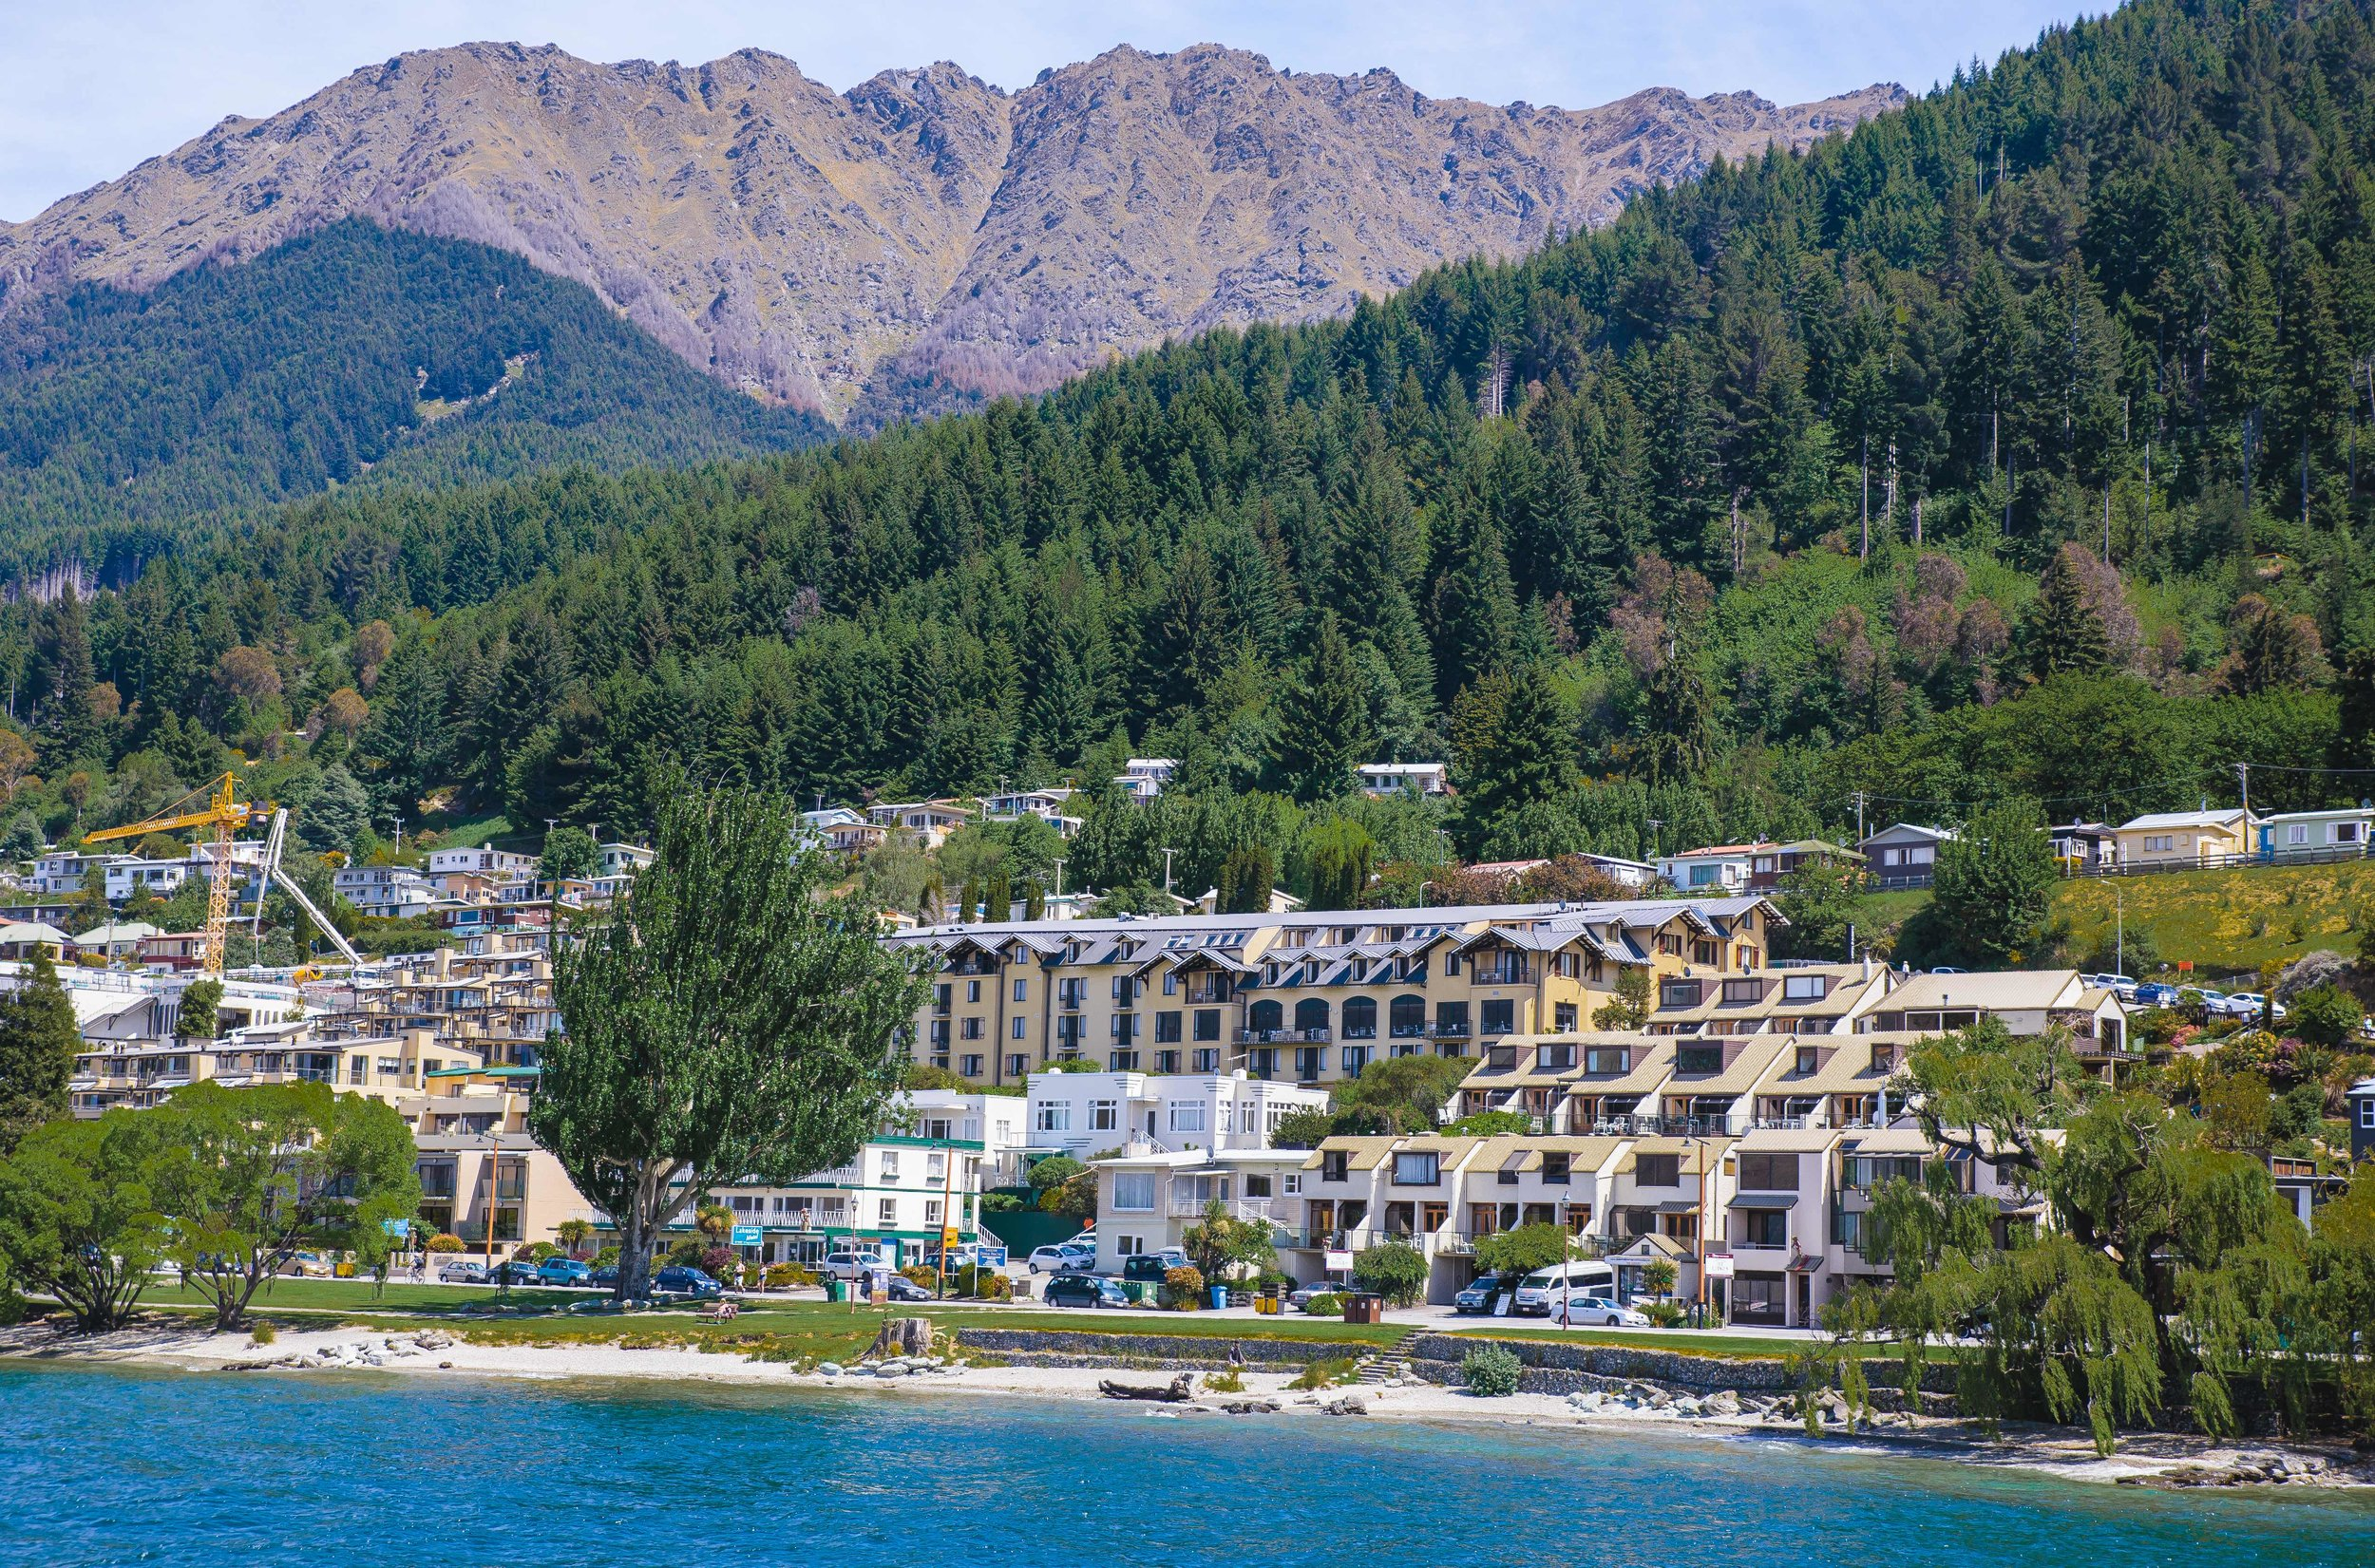 The view of the Hotel St Moritz while on the TSS Earnslaw